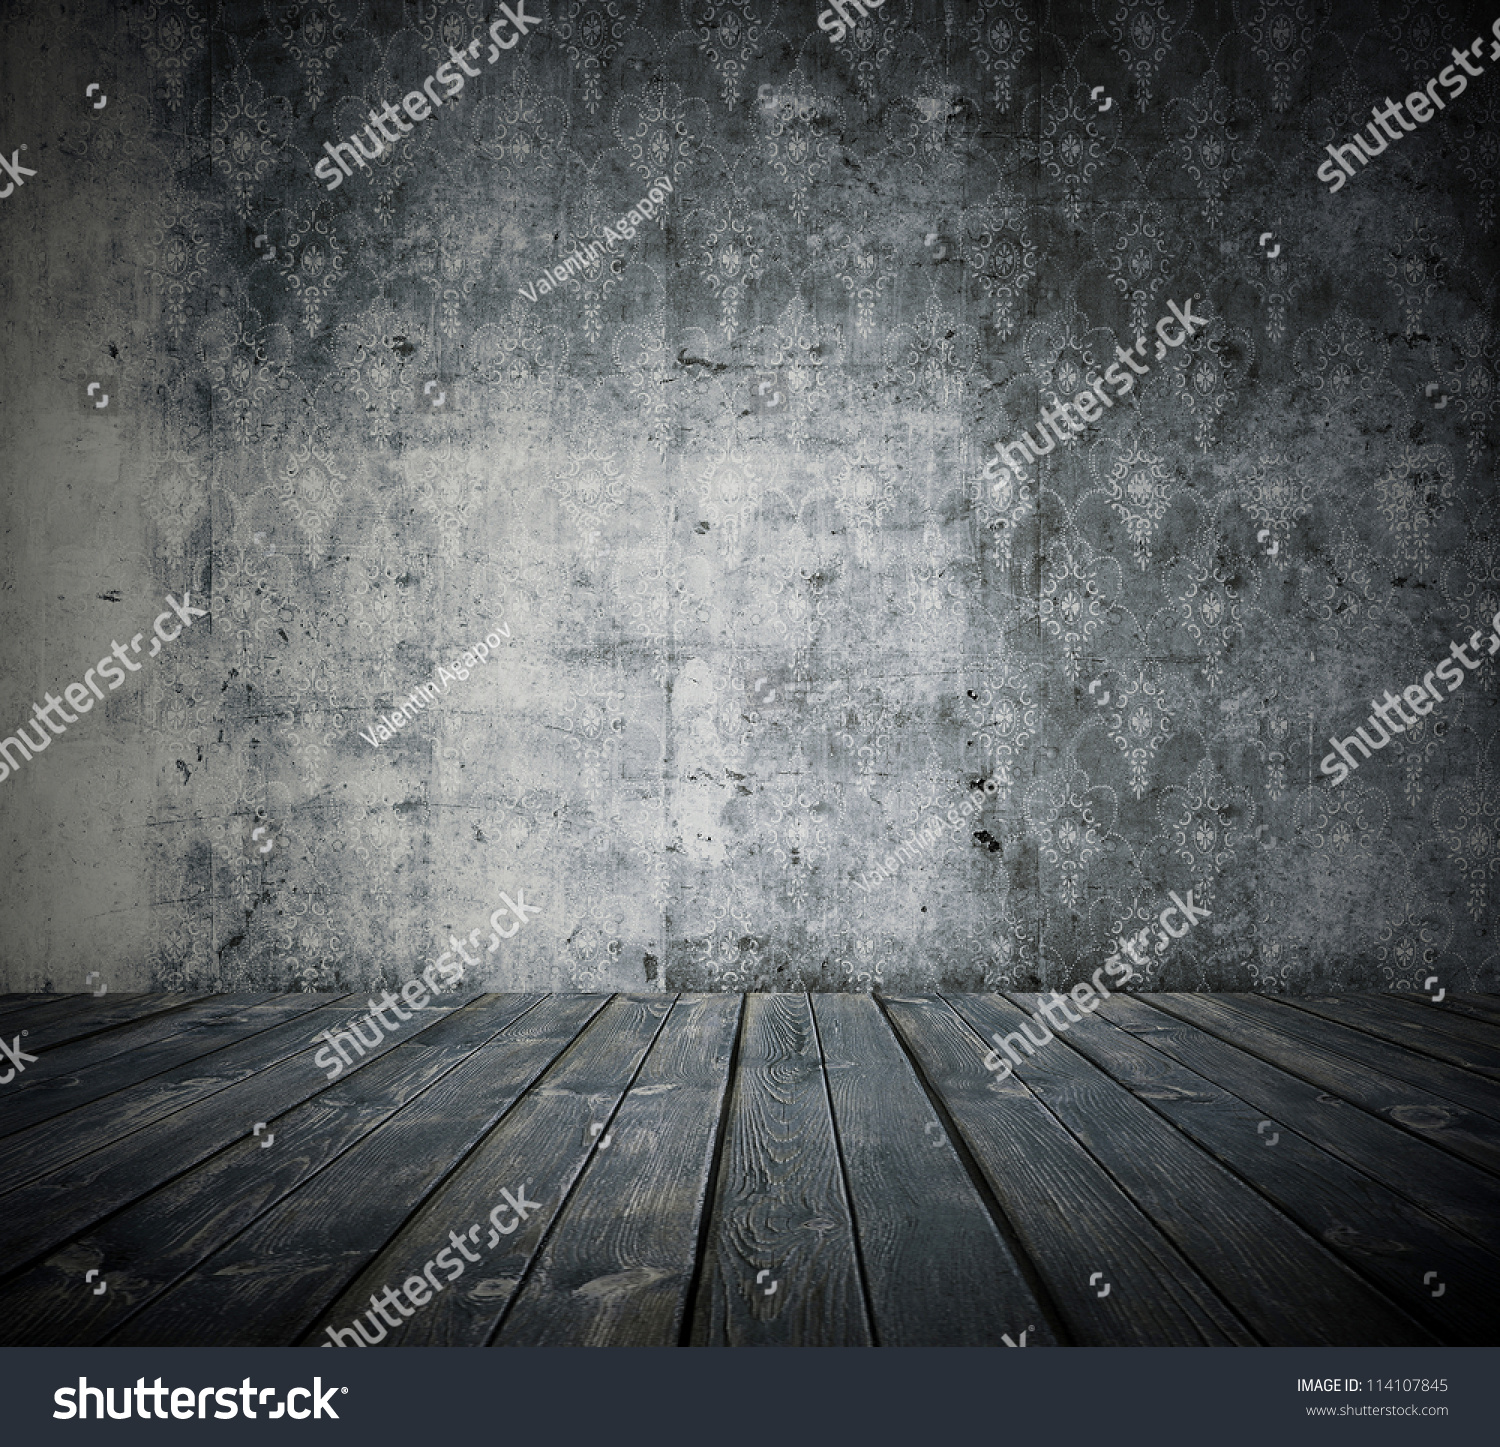 Old Grunge Room Black White Retro Stock Photo 114107845